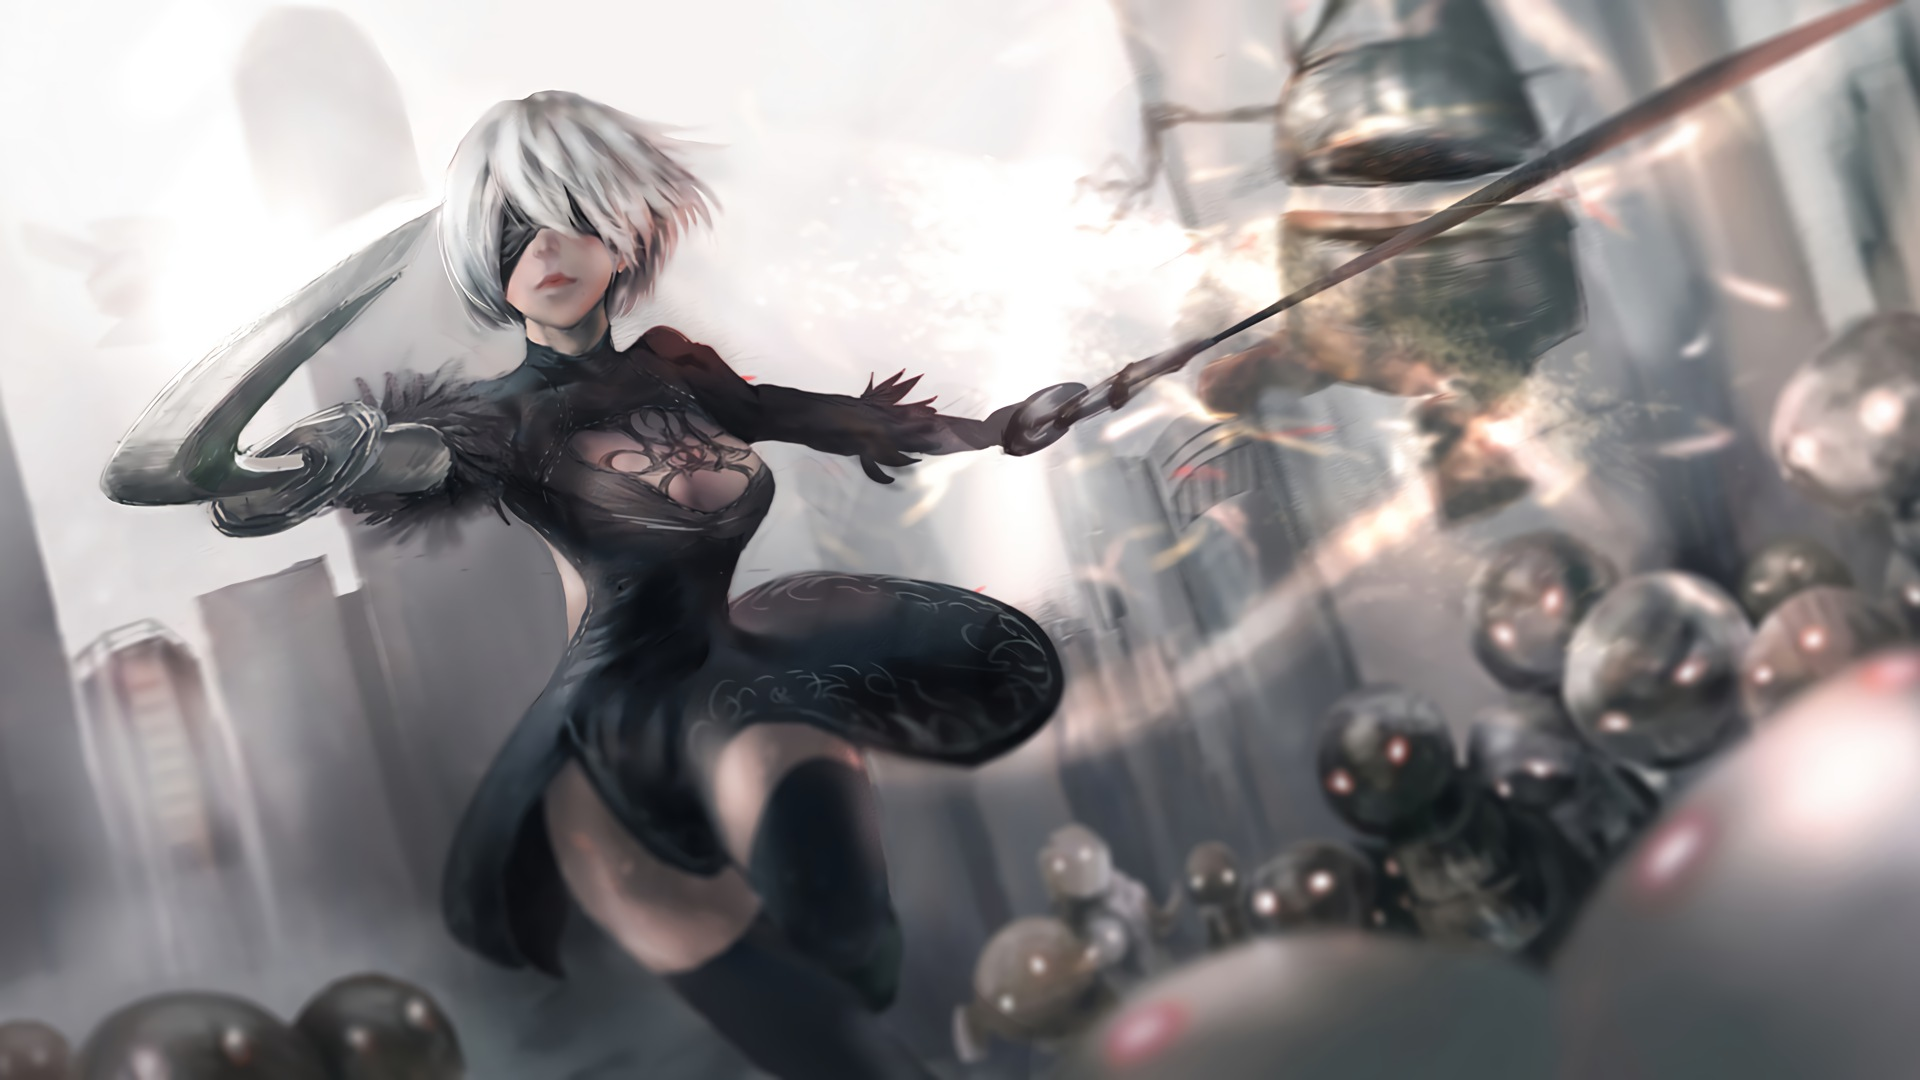 nier automata - 2b full hd wallpaper and background image